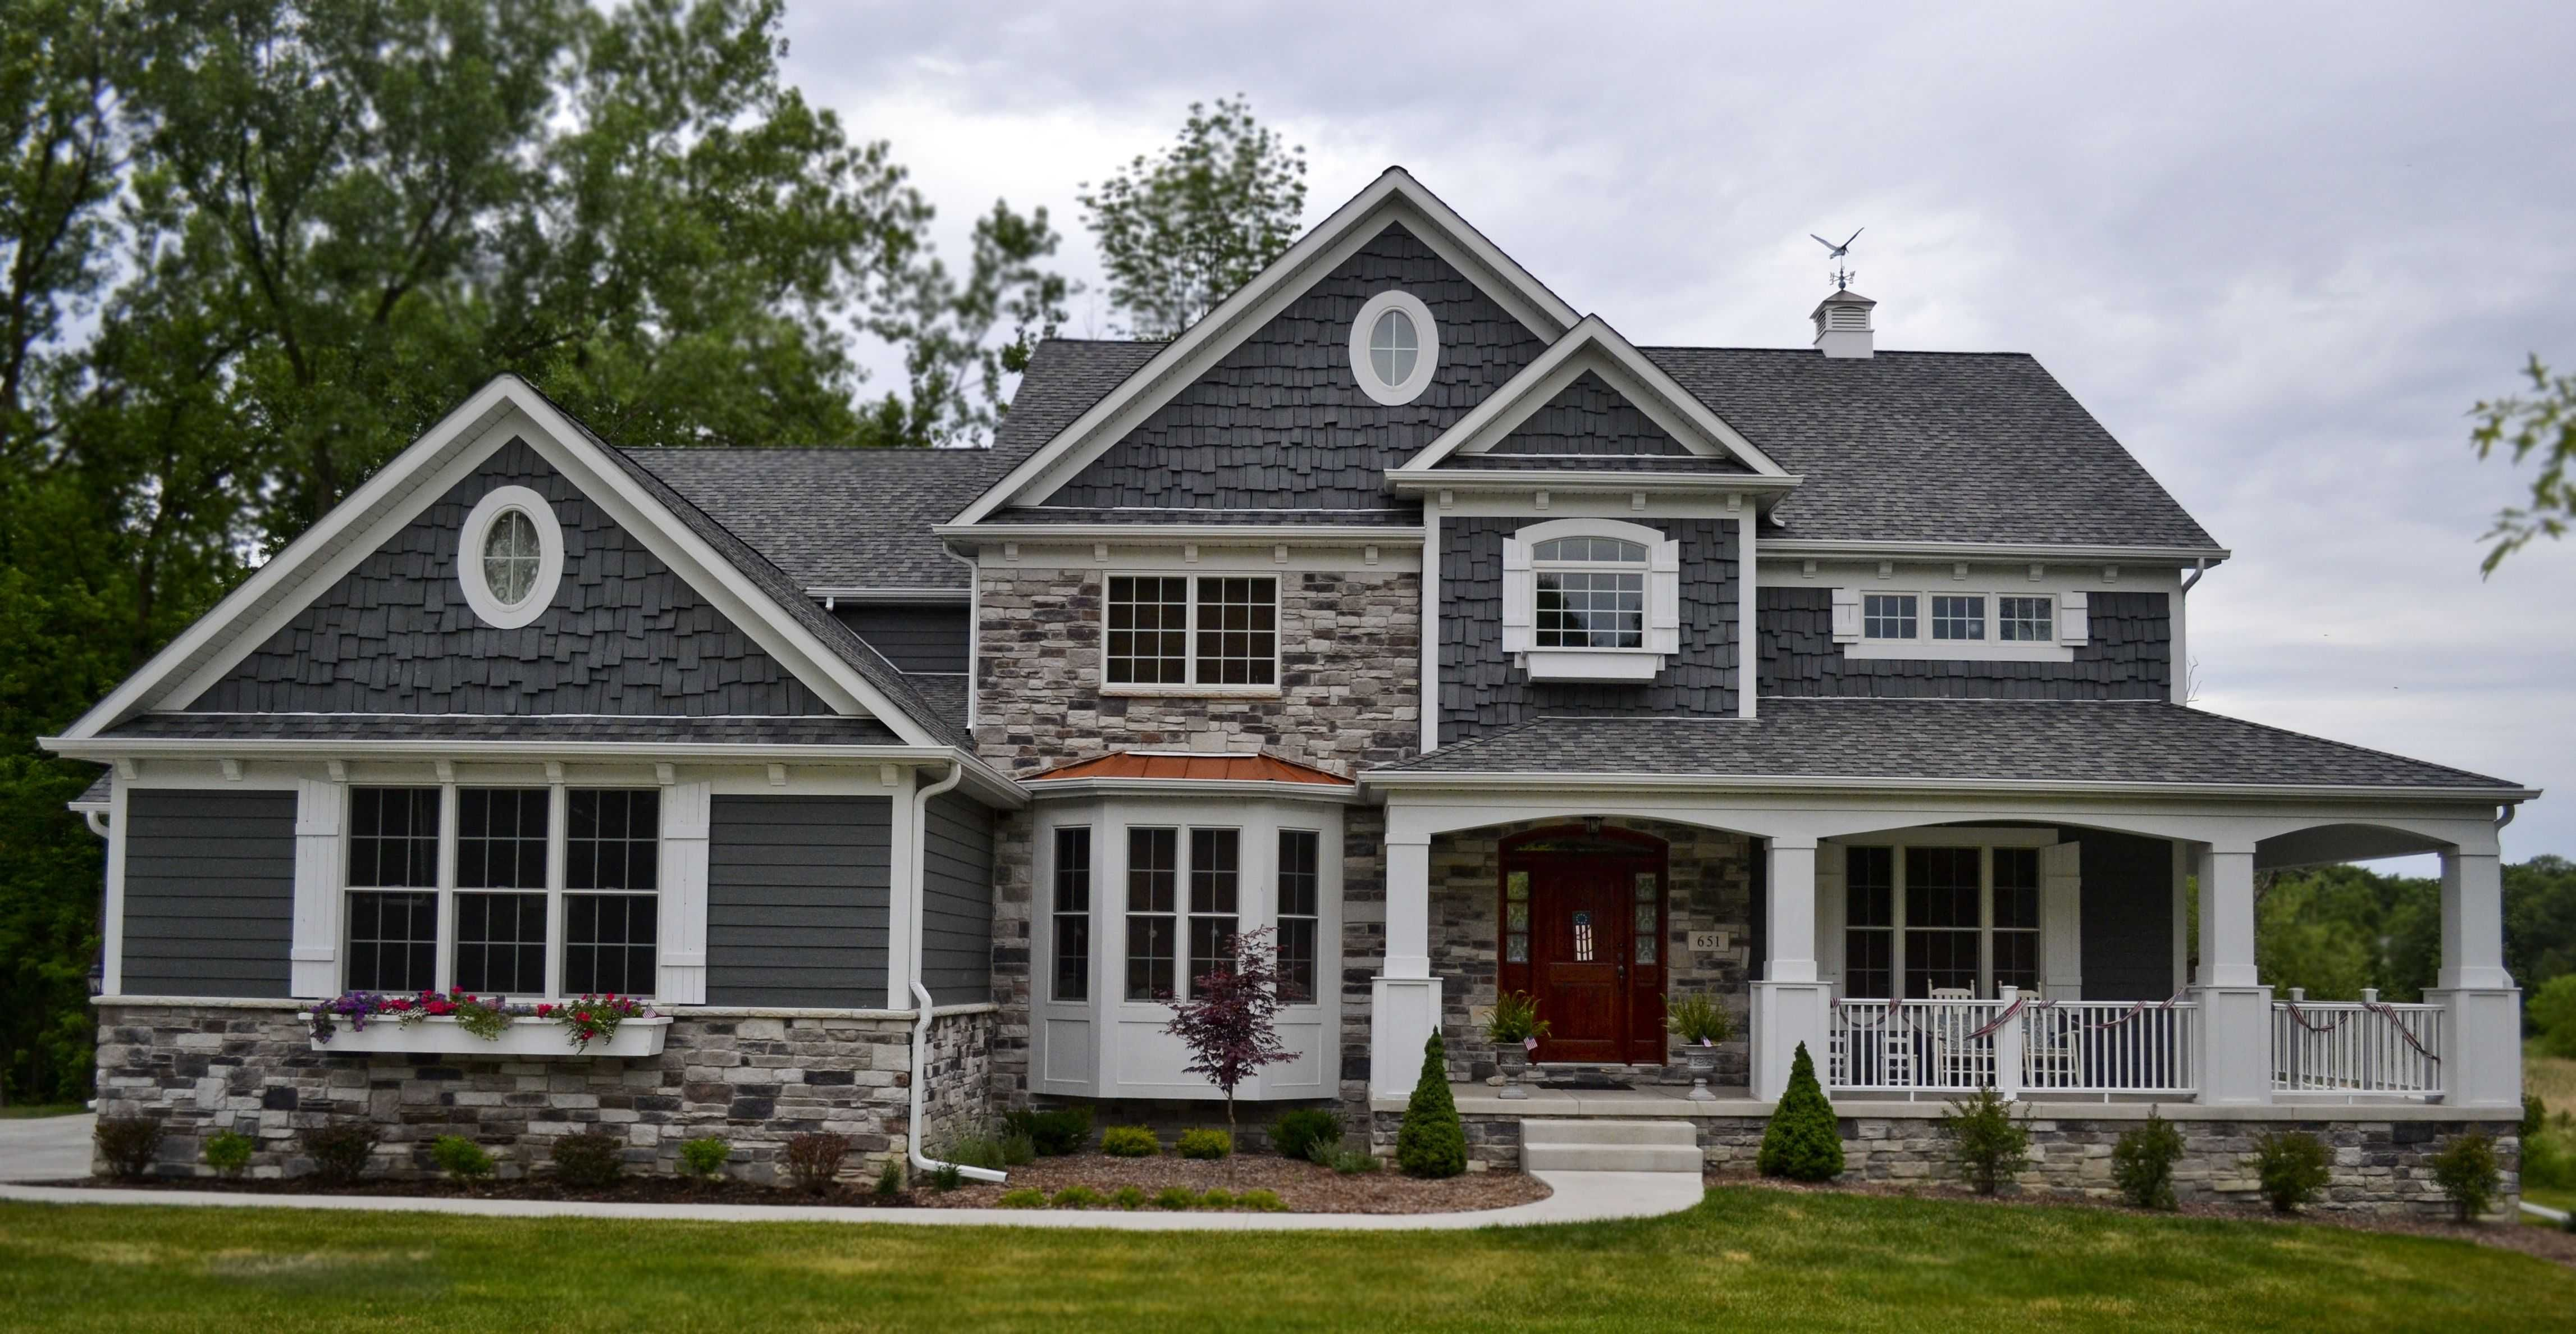 Large Farmhouse With Wrap Around Porch Awesome Large Farmhouse With Wrap Around Porch An Exterior Shot Of Craftsman House House Exterior Dream House Plans